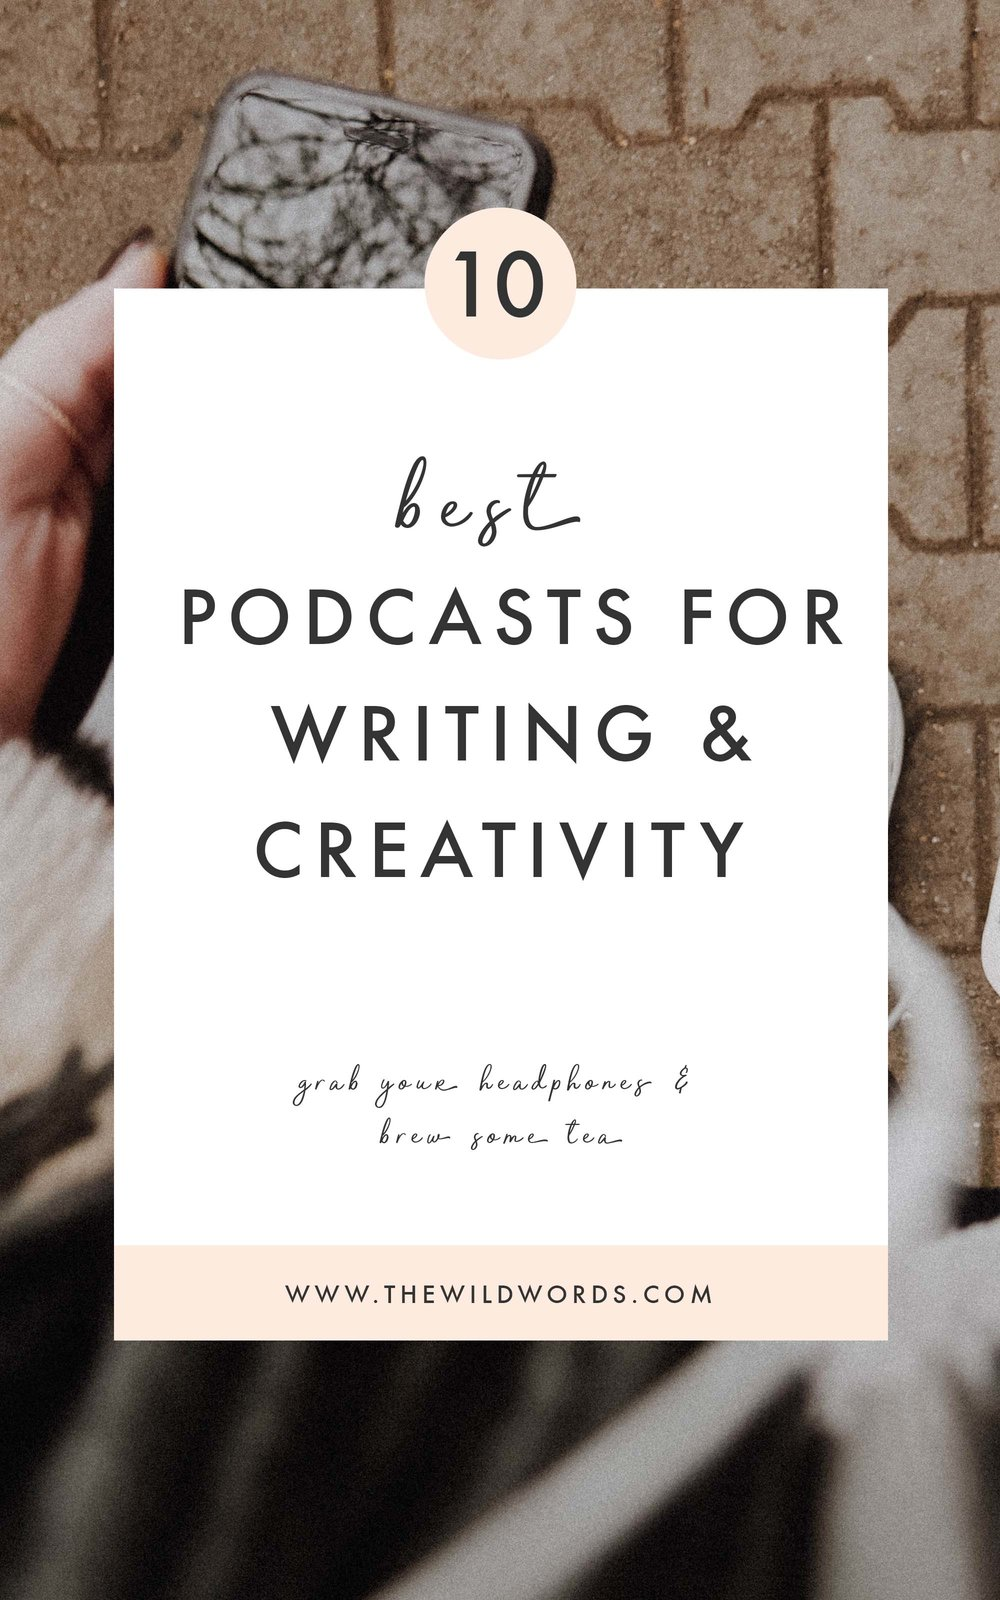 10 Best Podcasts for Writing & Creativity